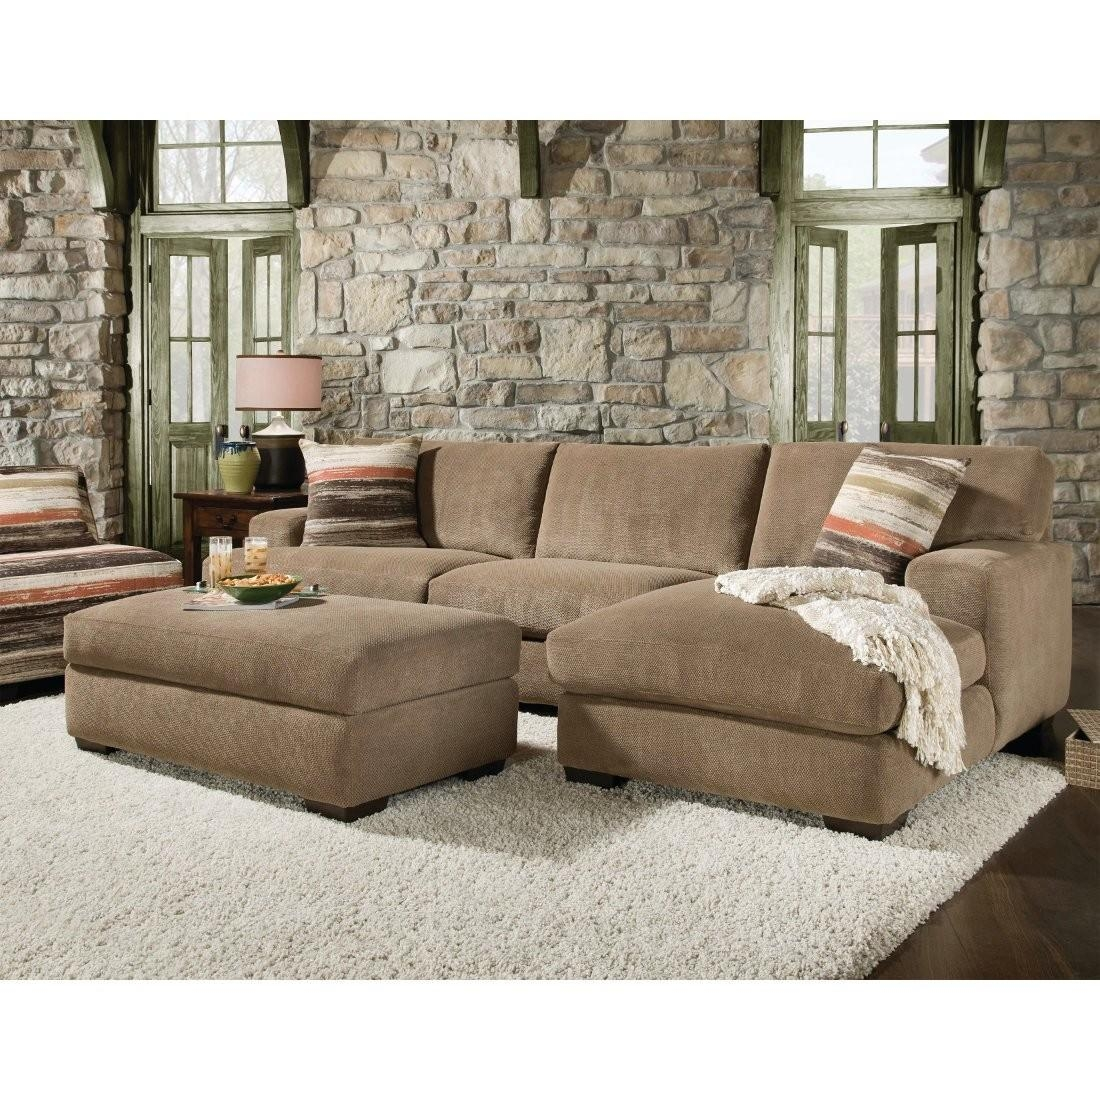 2 Piece Sectional Sofa With Chaise Design | Homesfeed intended for Sectional Sofa With 2 Chaises